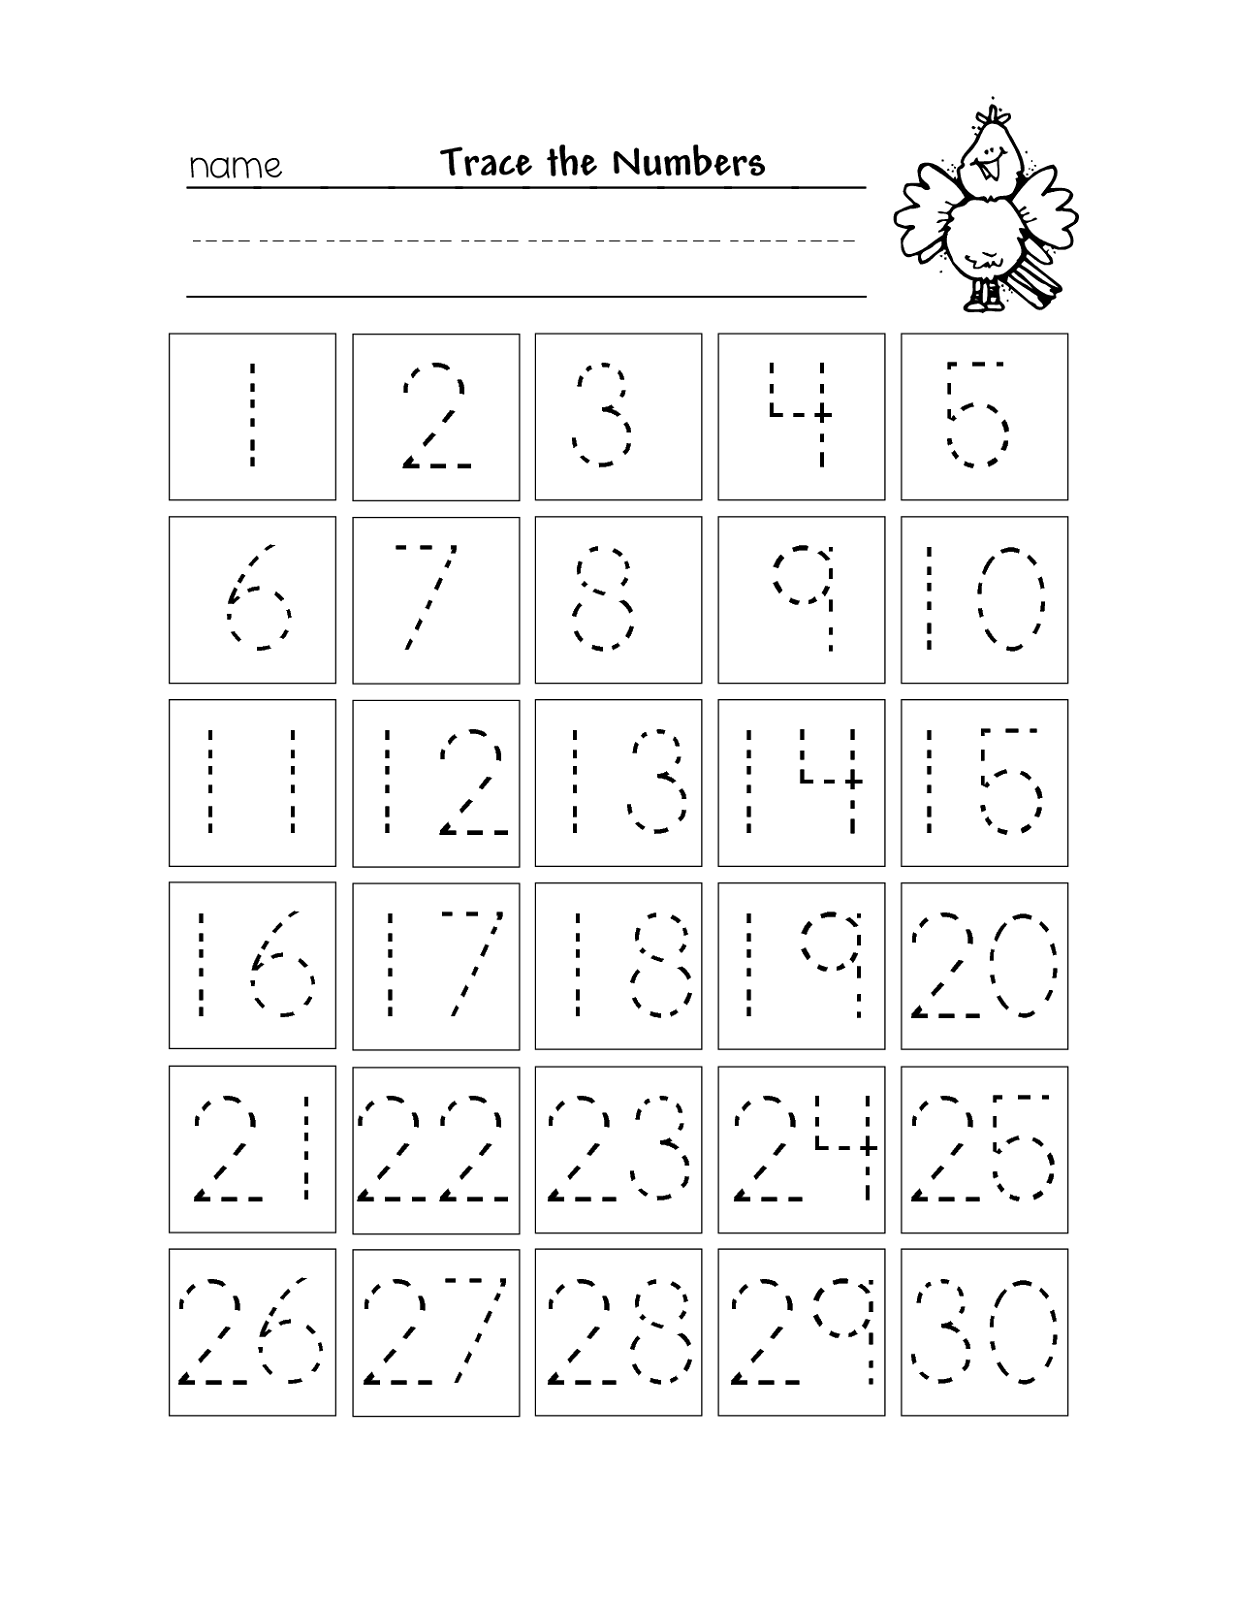 graphic about Printable Numbers 1 30 named No cost Printable Quantity Chart 1-30 Kinder Selection tracing